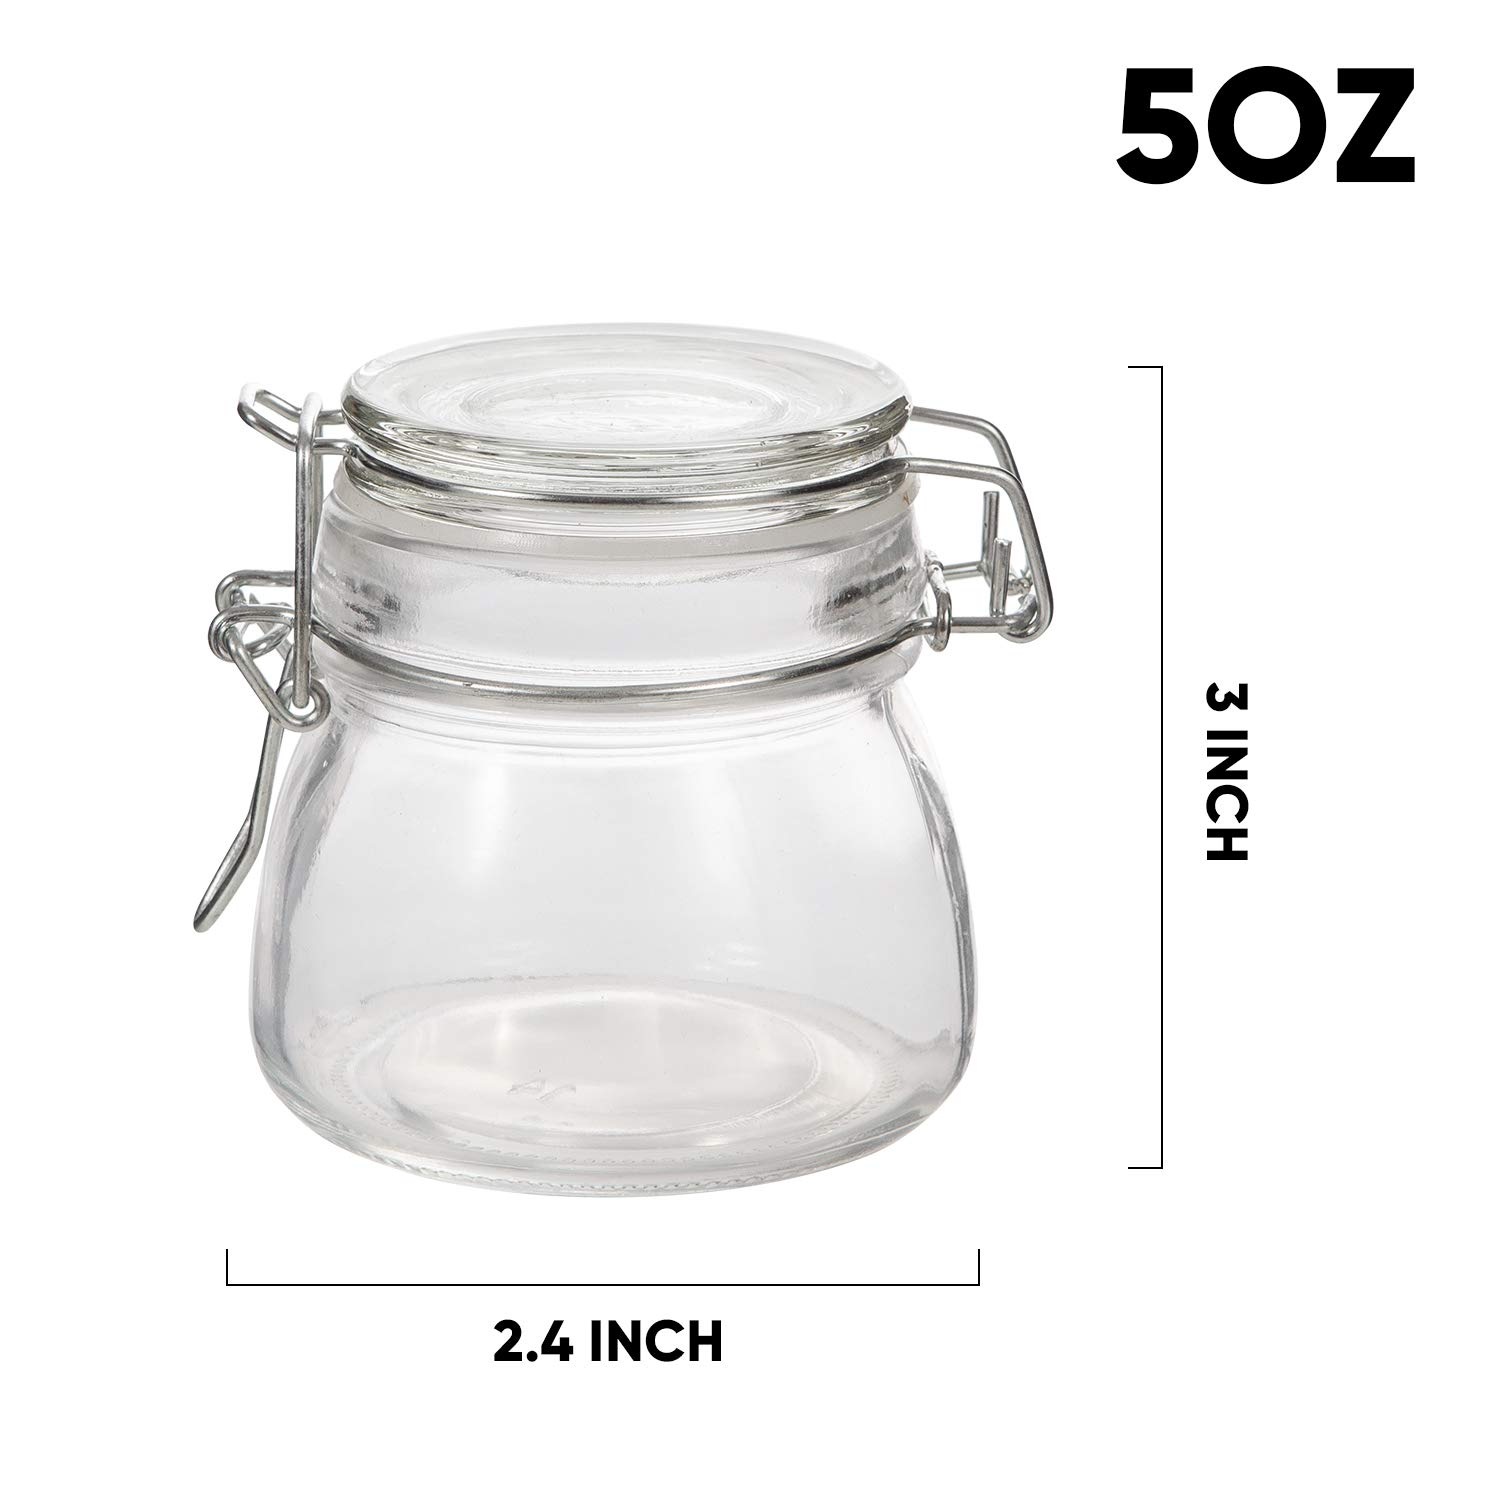 Mini Mason Jars,Accguan 5 OZ Glass Jars with Rubber Gasket and Hinged Lid,Small Canning JarsIdeal for storage,coffee,beans,sugar,snacks,candy,coookies,dry food,Set of 15 by Accguan (Image #2)